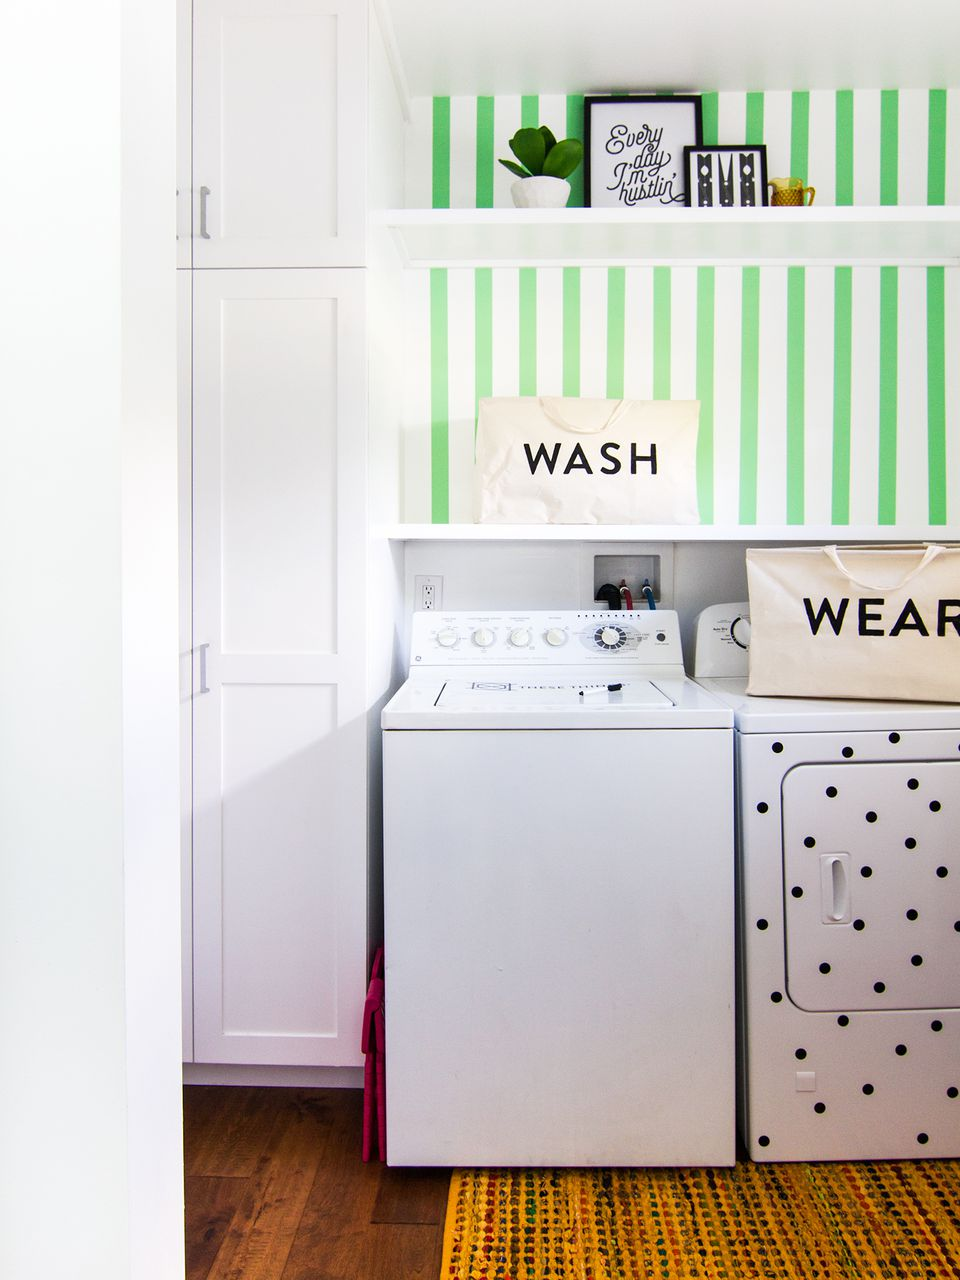 20 clever diy laundry room ideas diy laundry room storage baskets solutioingenieria Choice Image